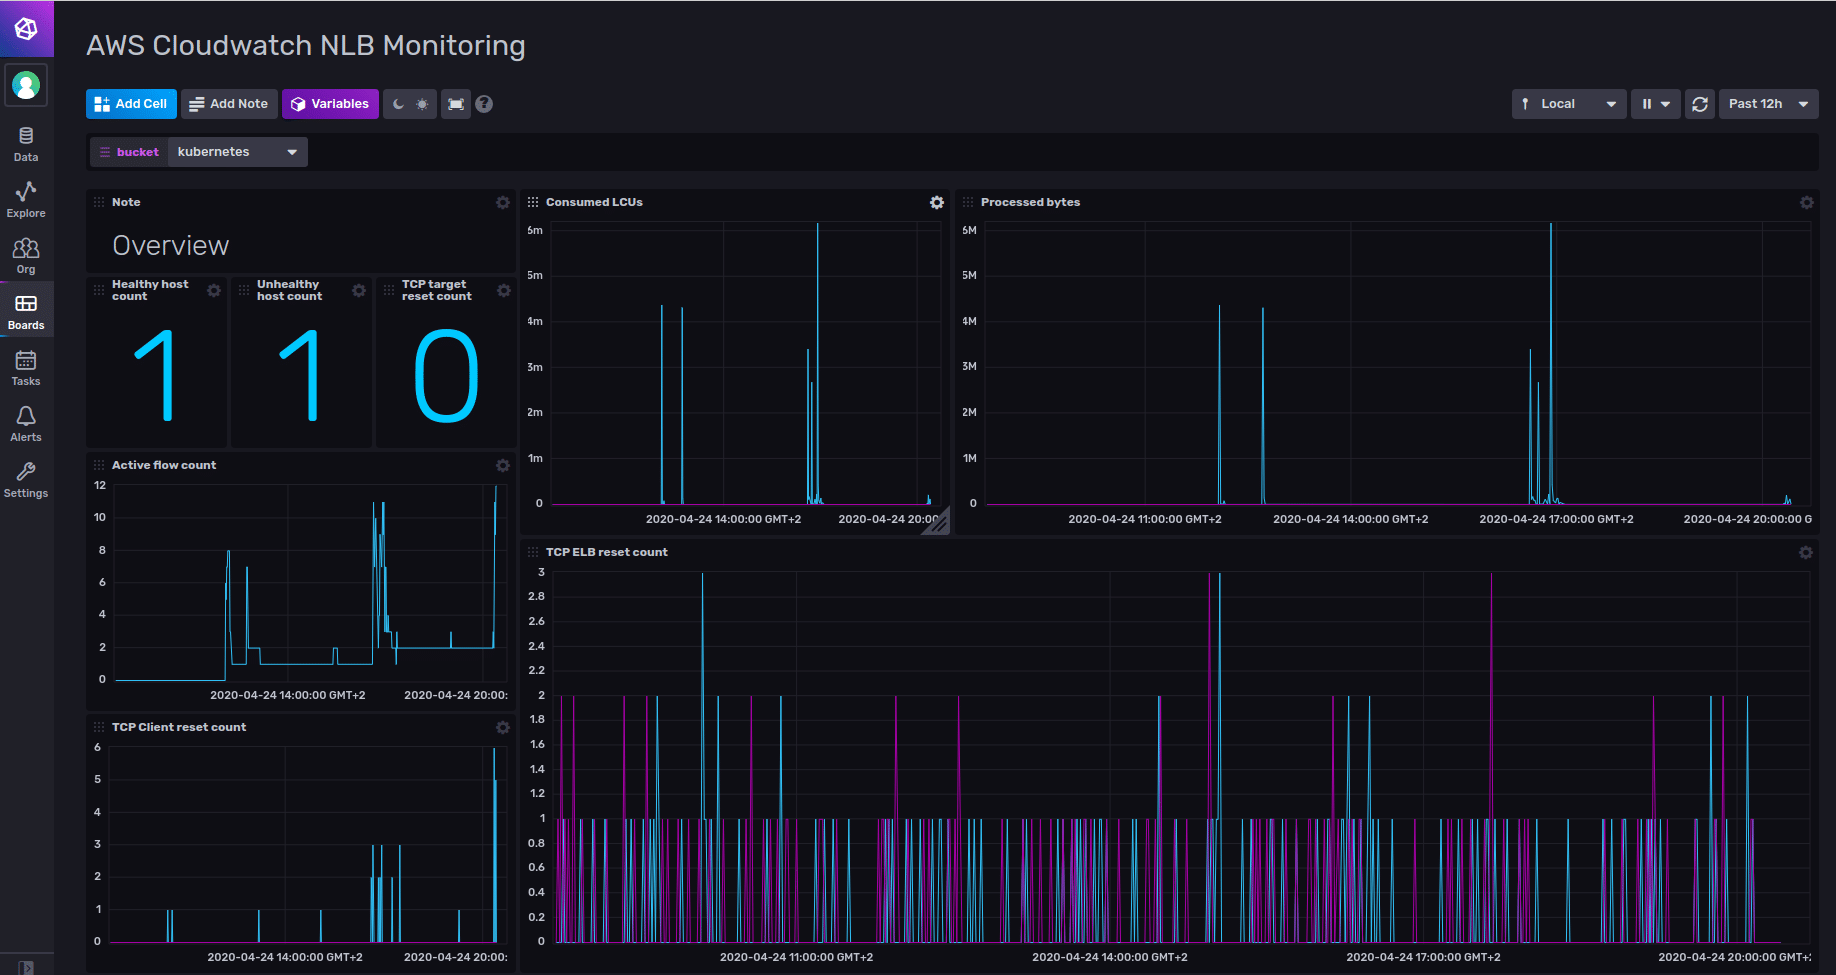 AWS Cloudwatch Network Load Balancer Monitoring Dashboard